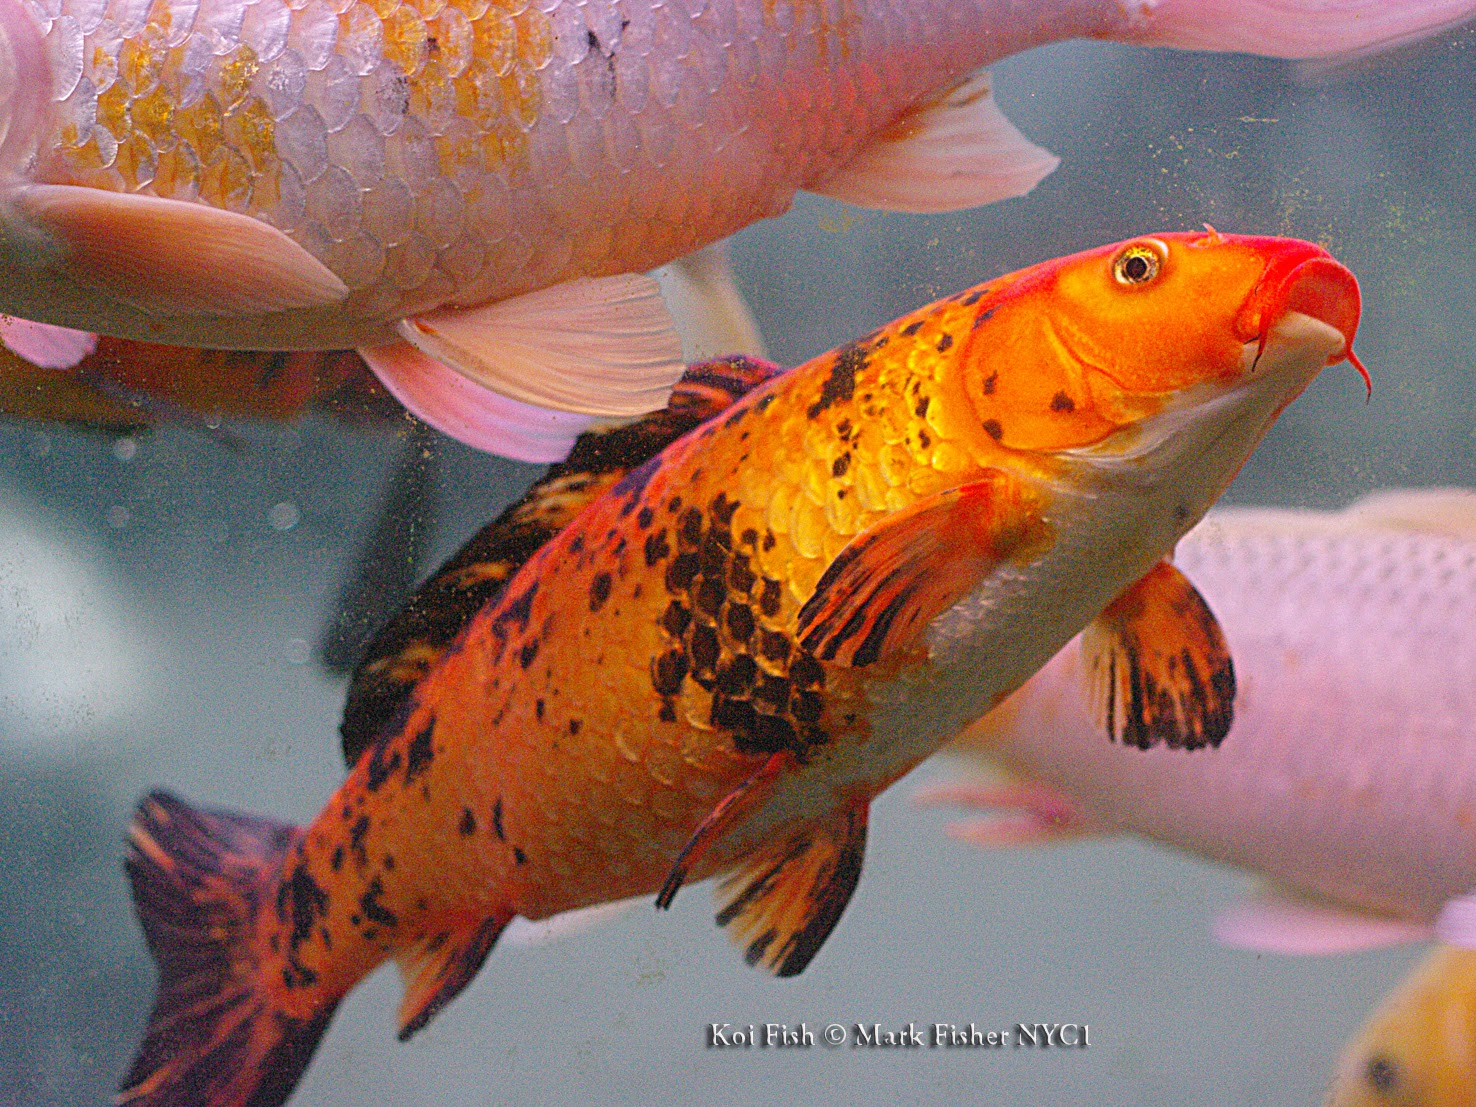 Mark fisher american photographer koi fish american for Japanese koi carp fish